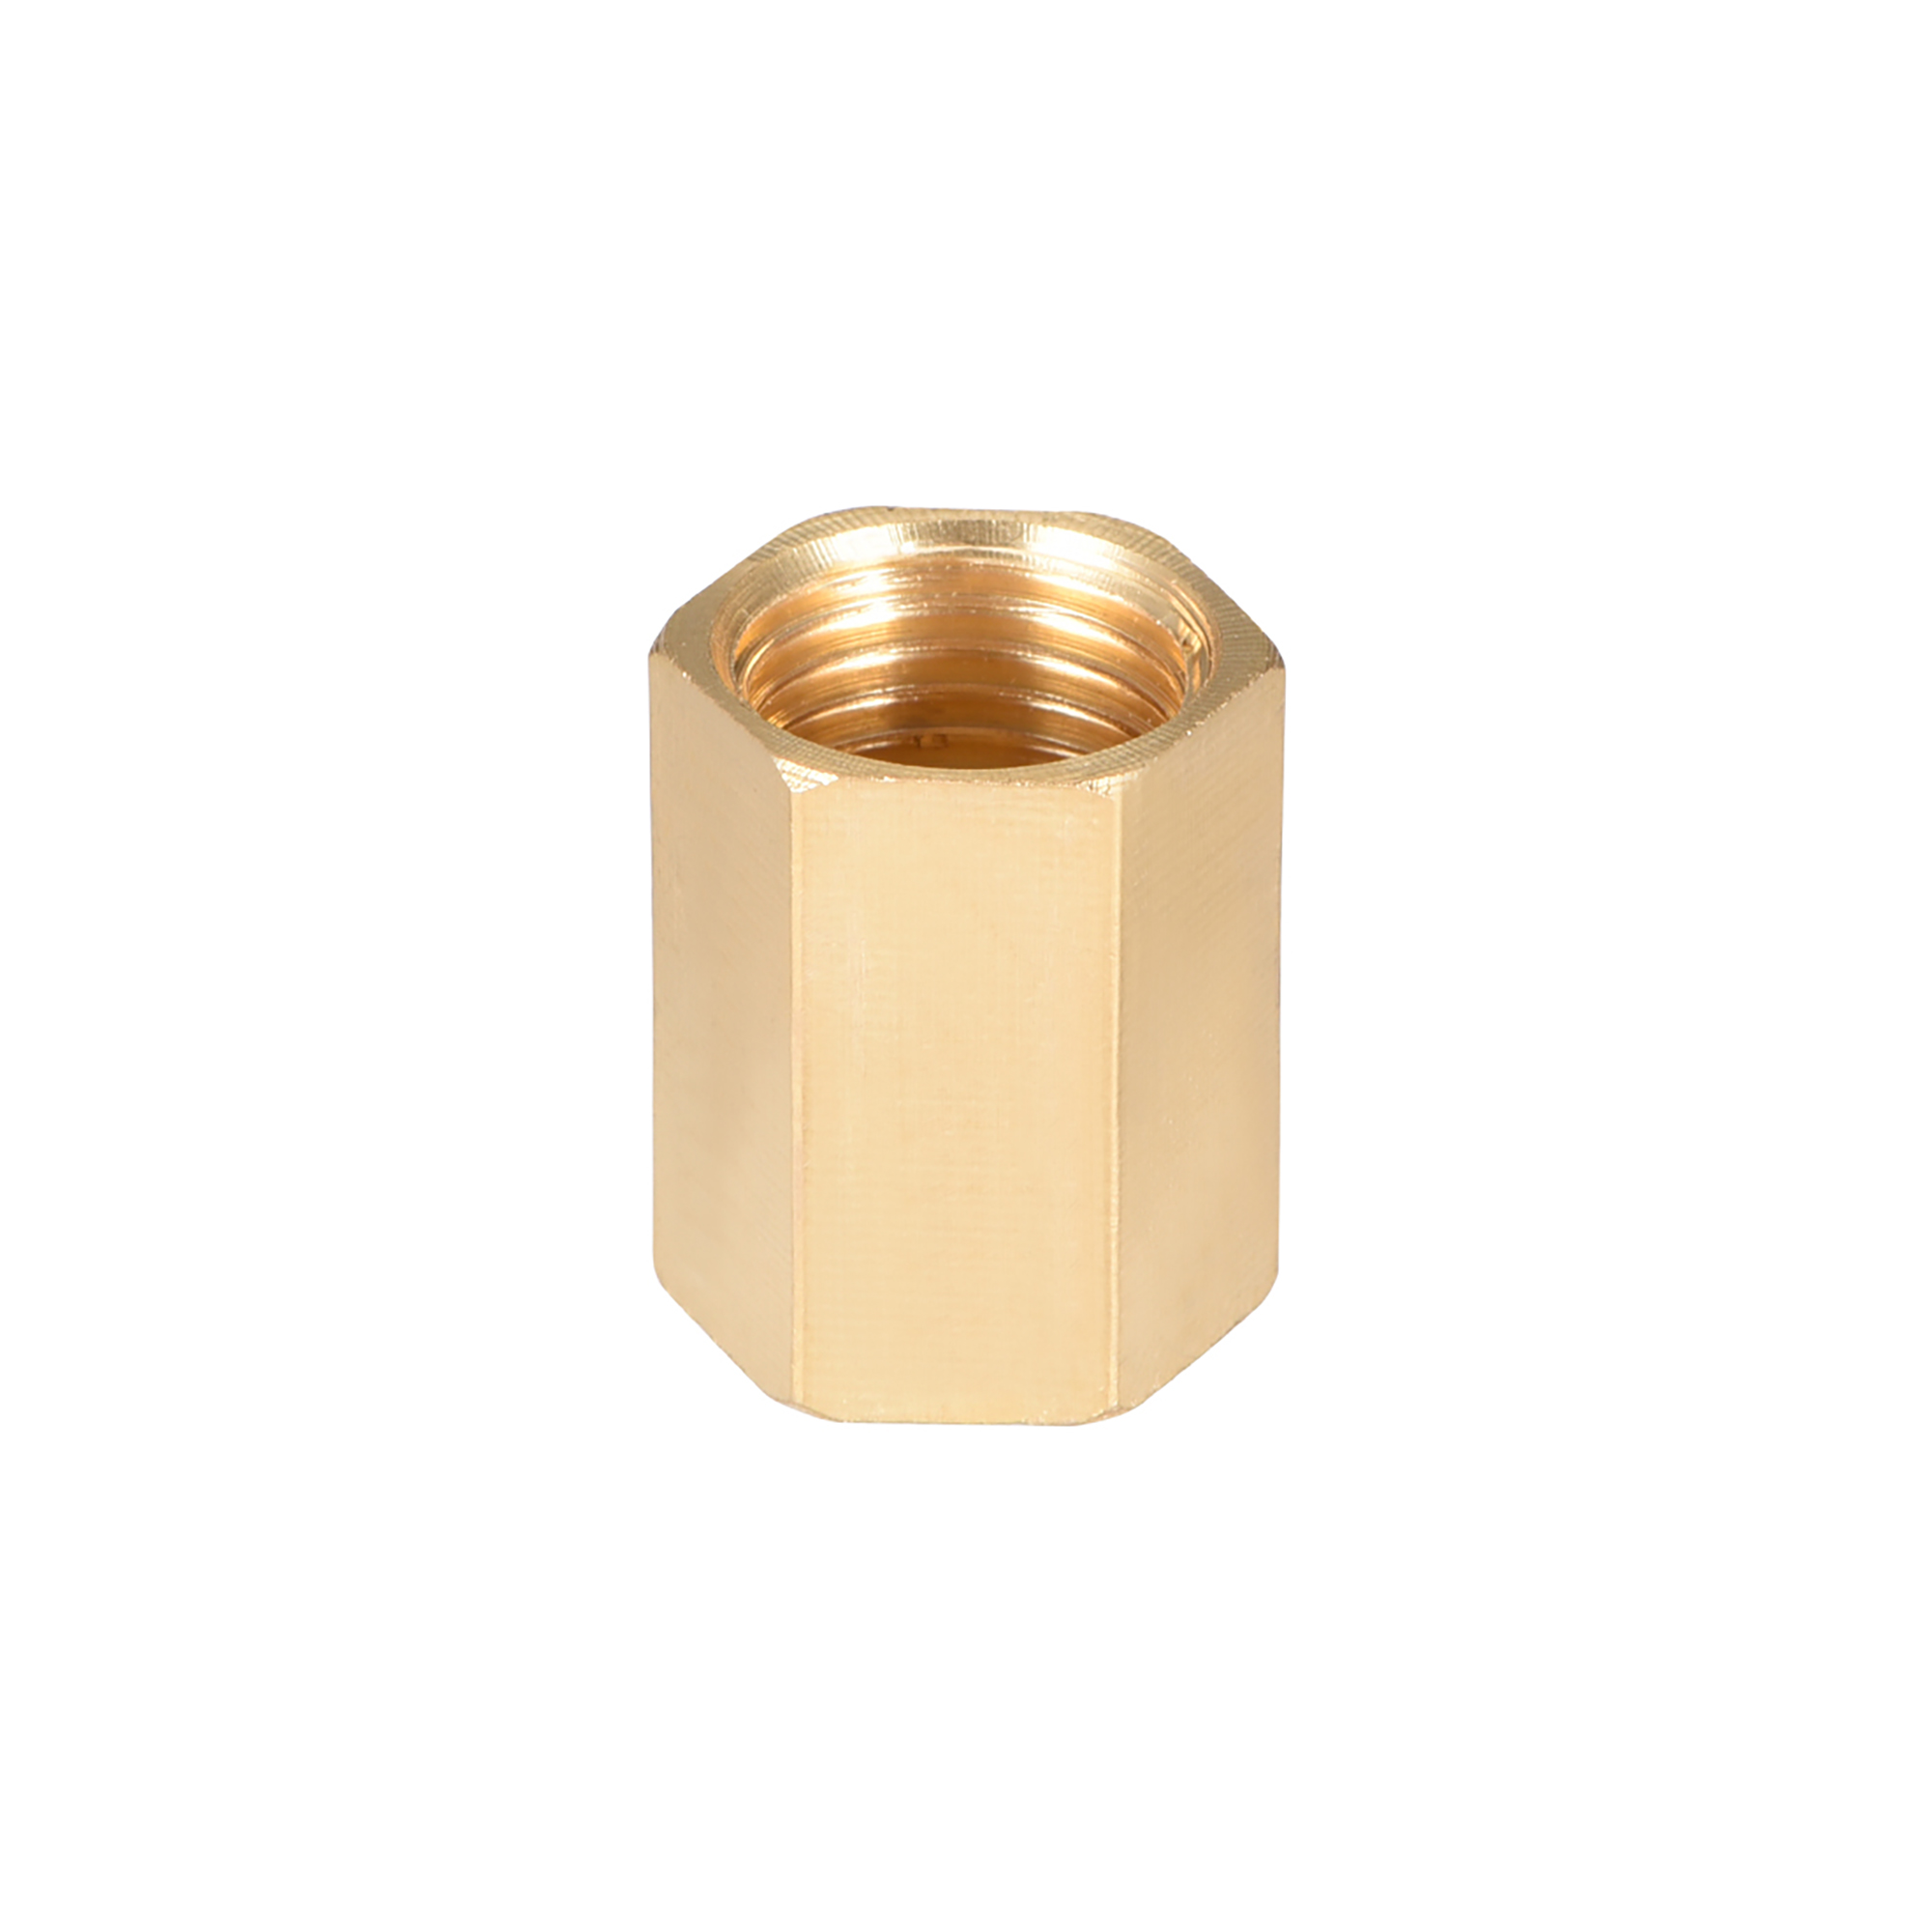 """Brass Pipe Fitting, 1/4"""" G Female Thread Straight Brass Hex Rod Pipe Fitting Coupling - image 4 de 4"""